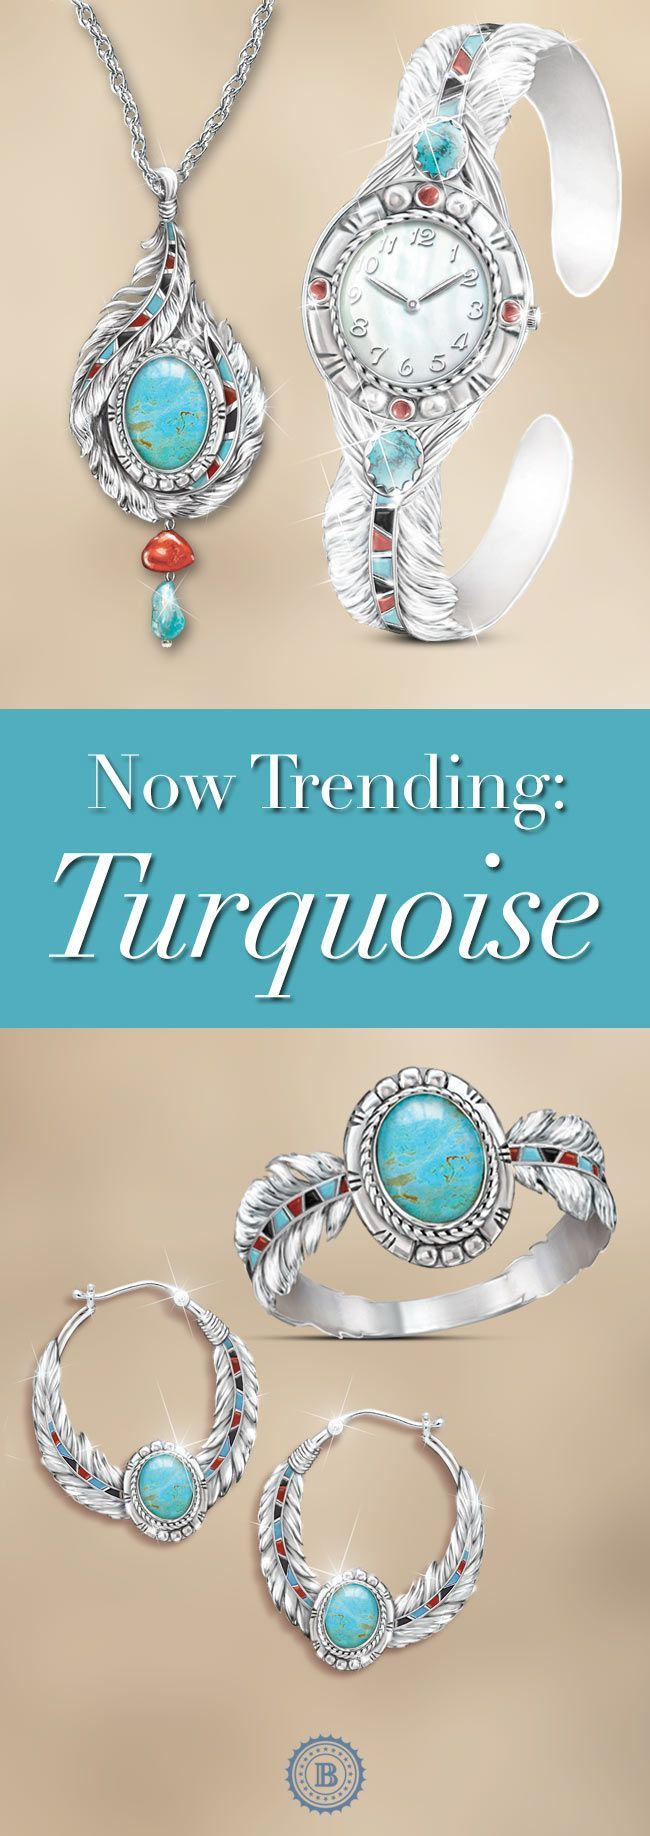 Liven Your Spring With The Vivid Colors Of The Southwest Turquoise Is Currentl Authentic Turquoise Jewelry Turquoise Jewelry Native American Turquoise Jewelry